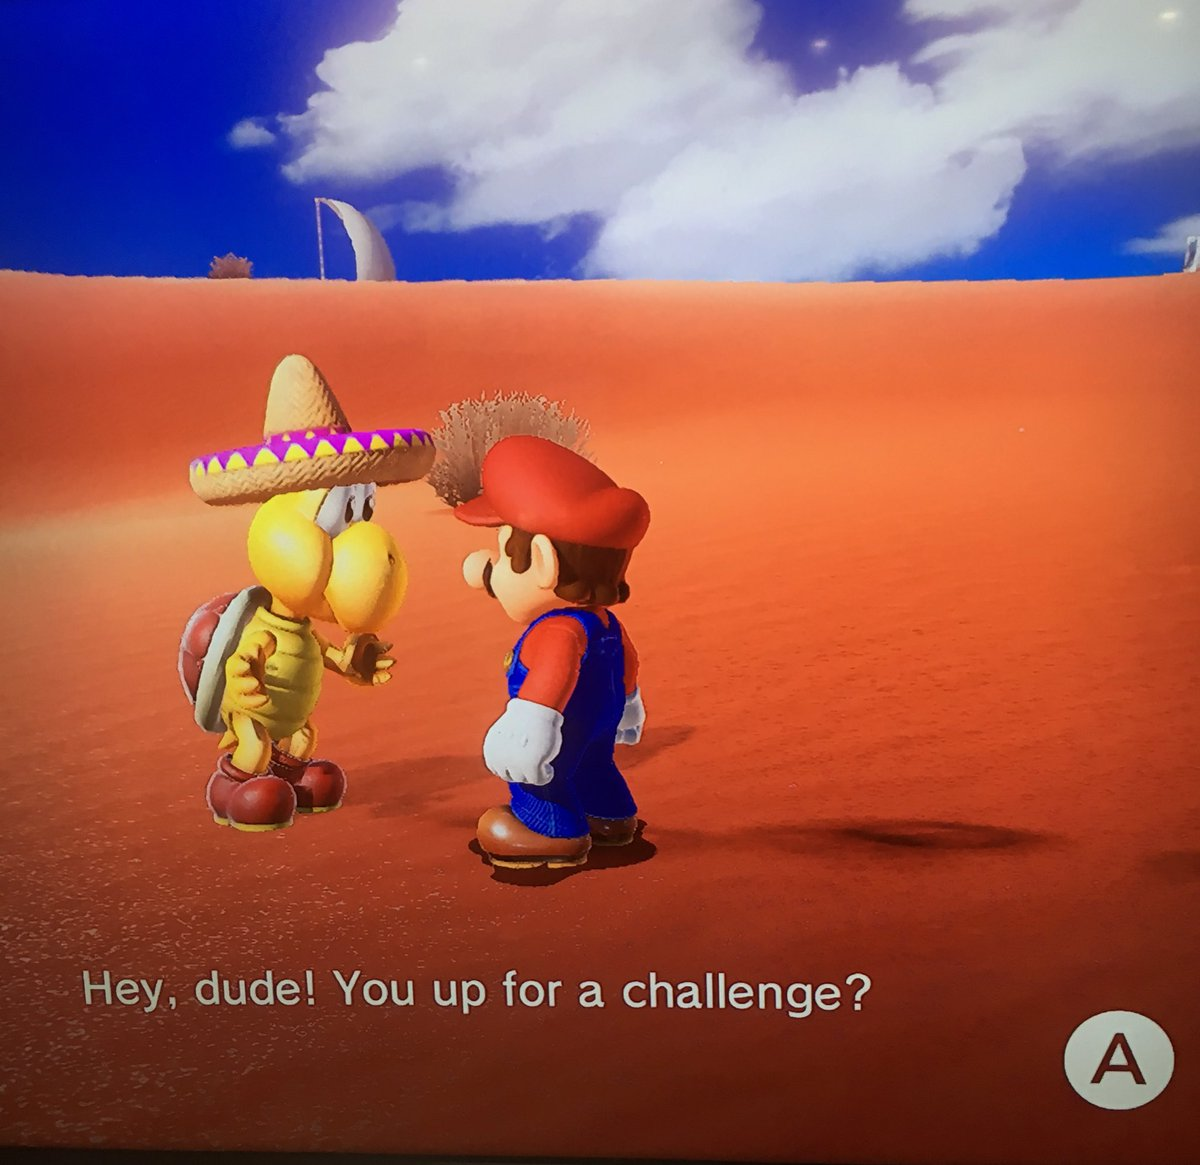 I have waited my whole life for a turtle in a sombrero to ask me this question